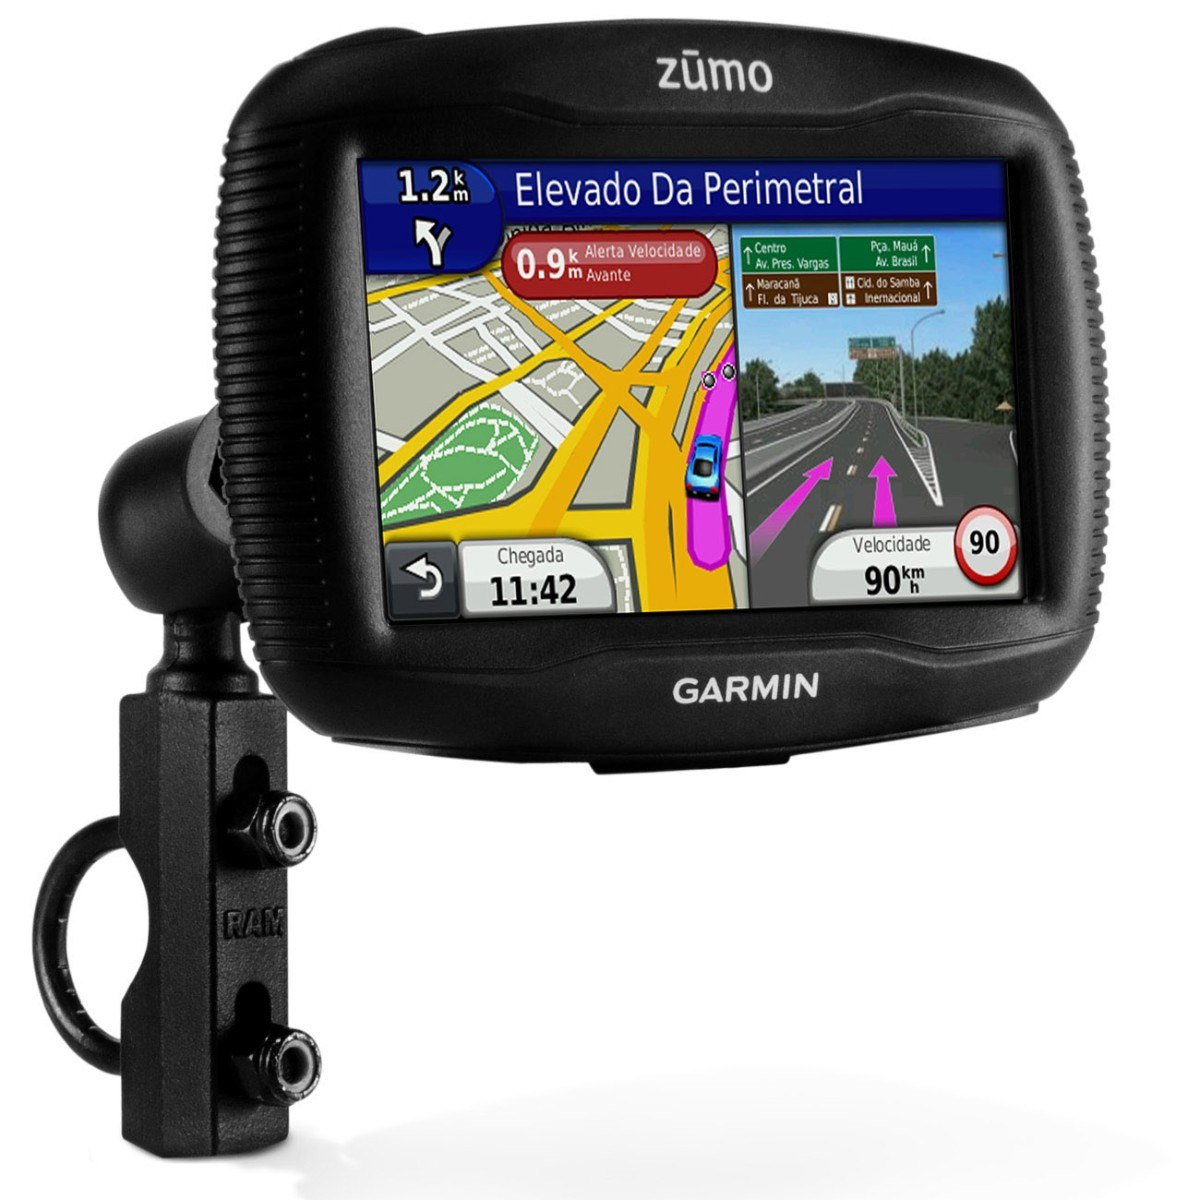 viagens de gps garmin modelo 350 lm para motos. Black Bedroom Furniture Sets. Home Design Ideas